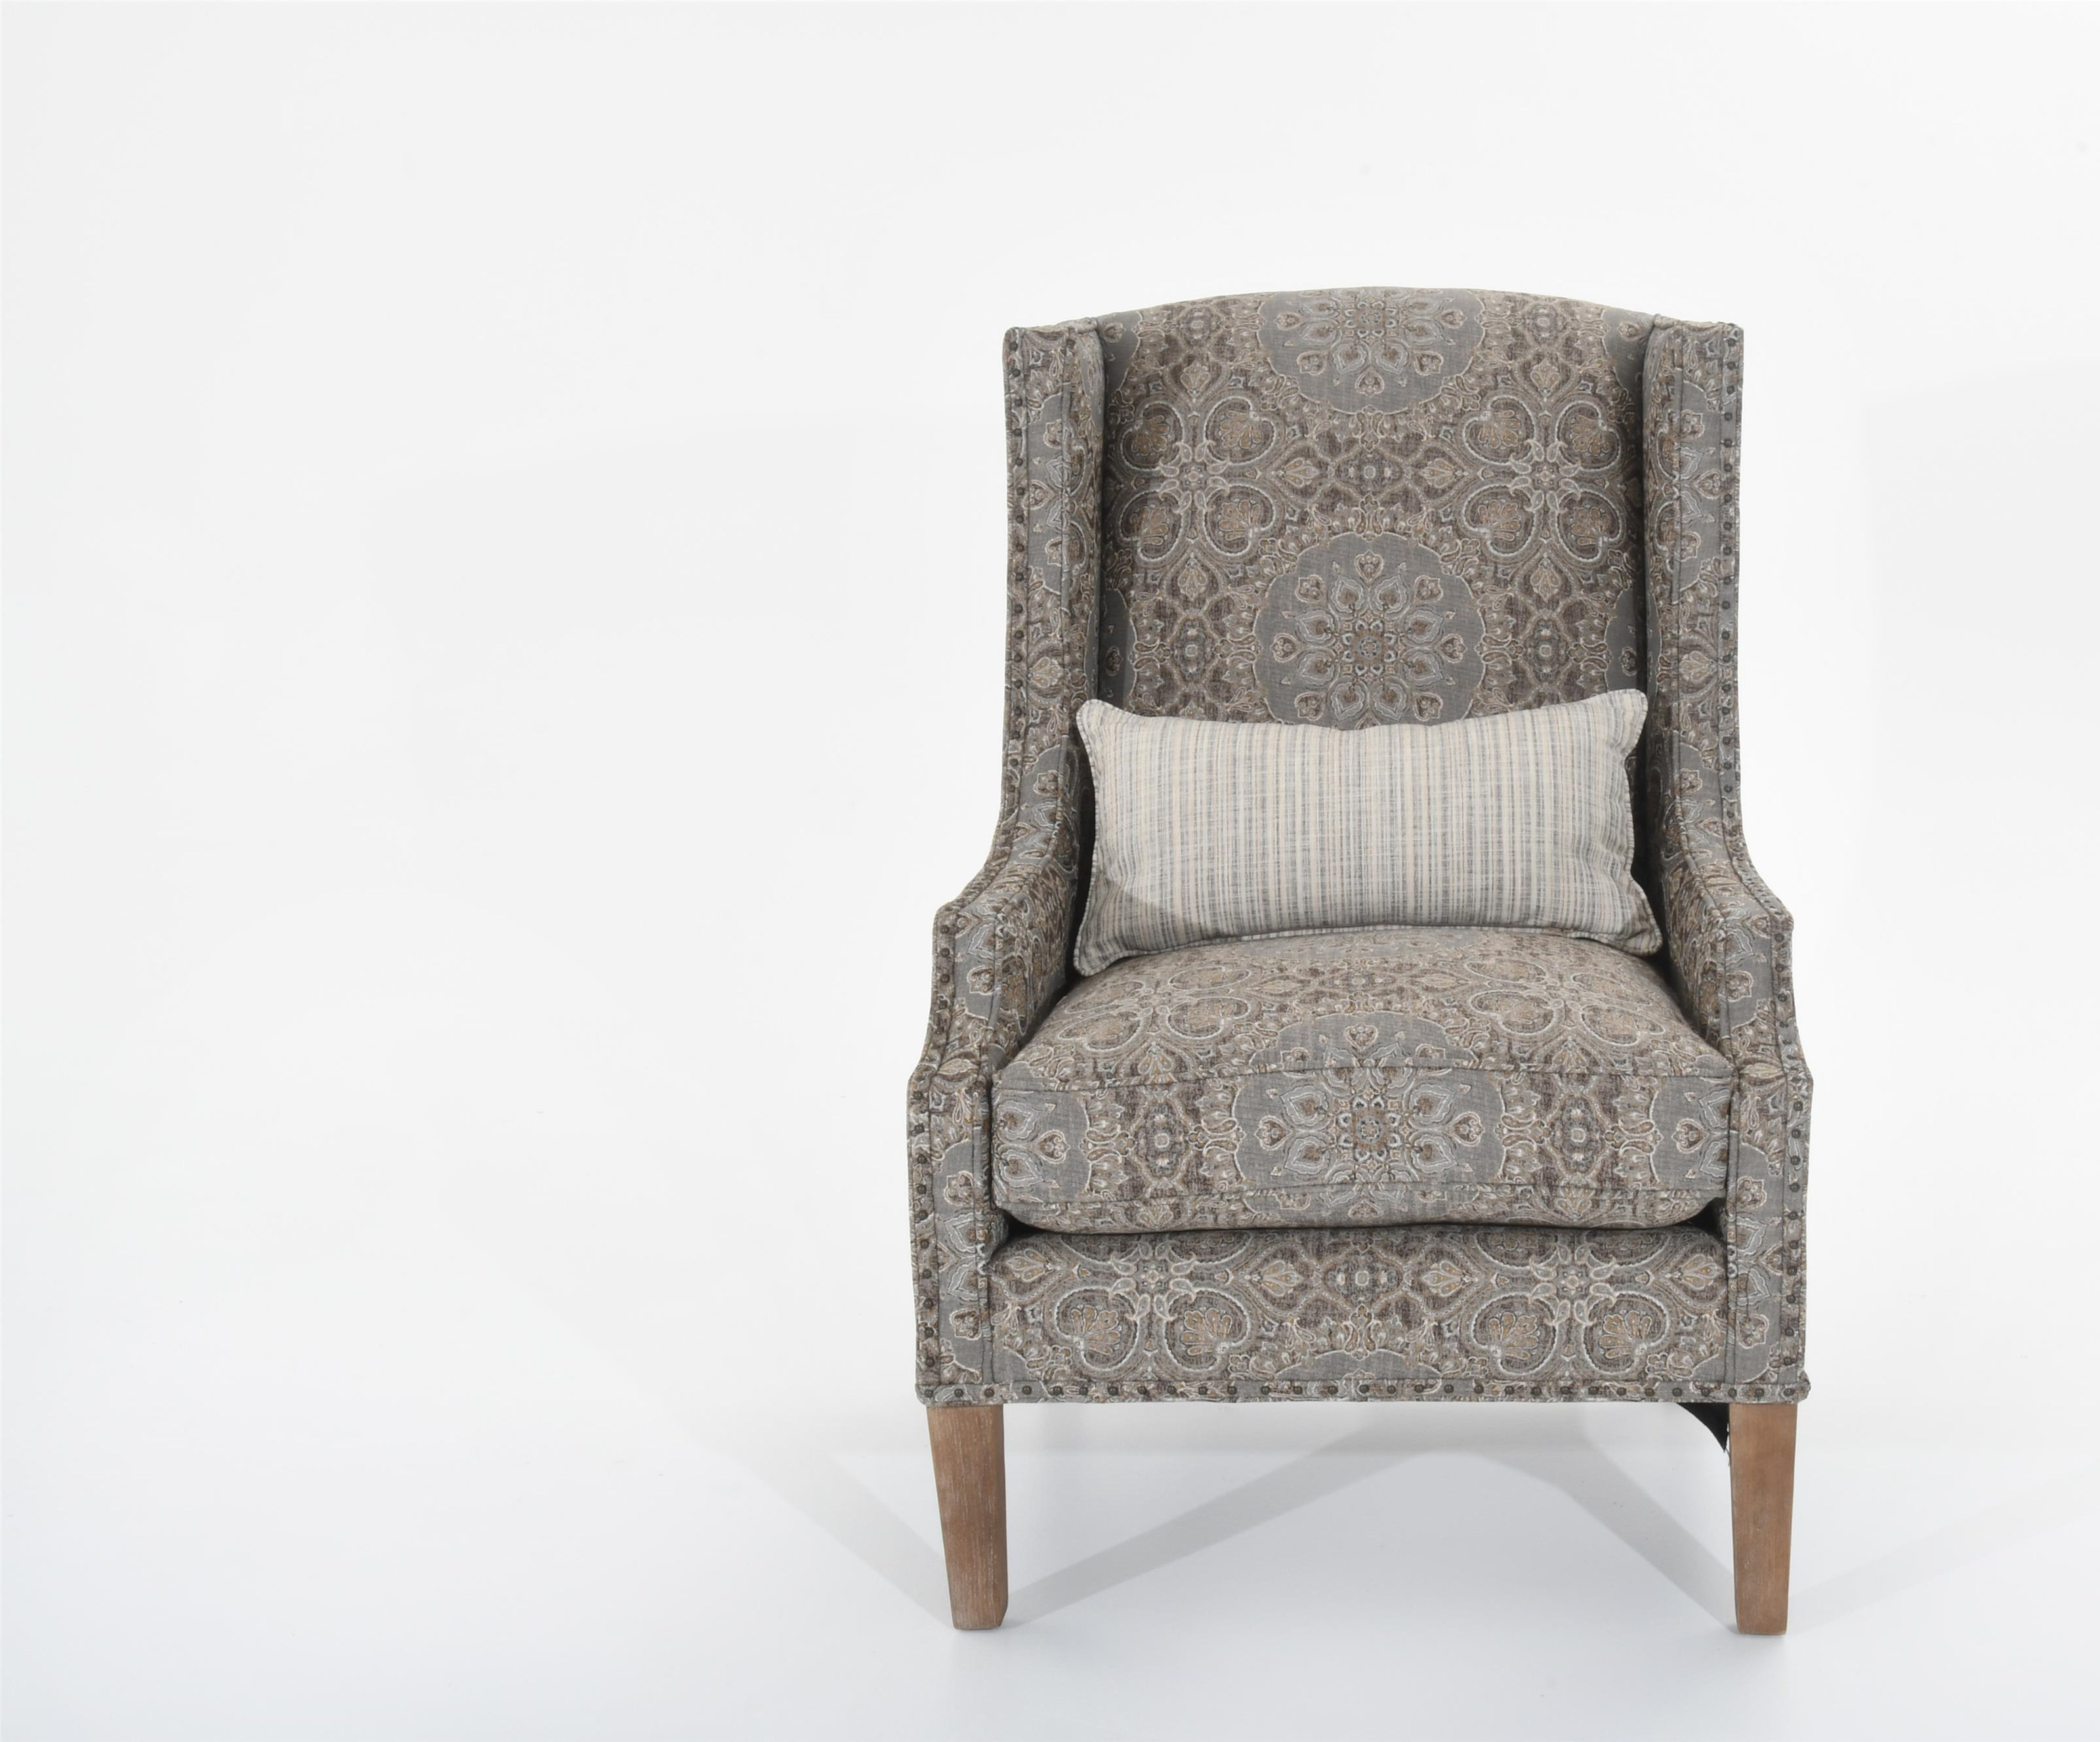 Tribeca Chair by Aria Designs at Baer's Furniture